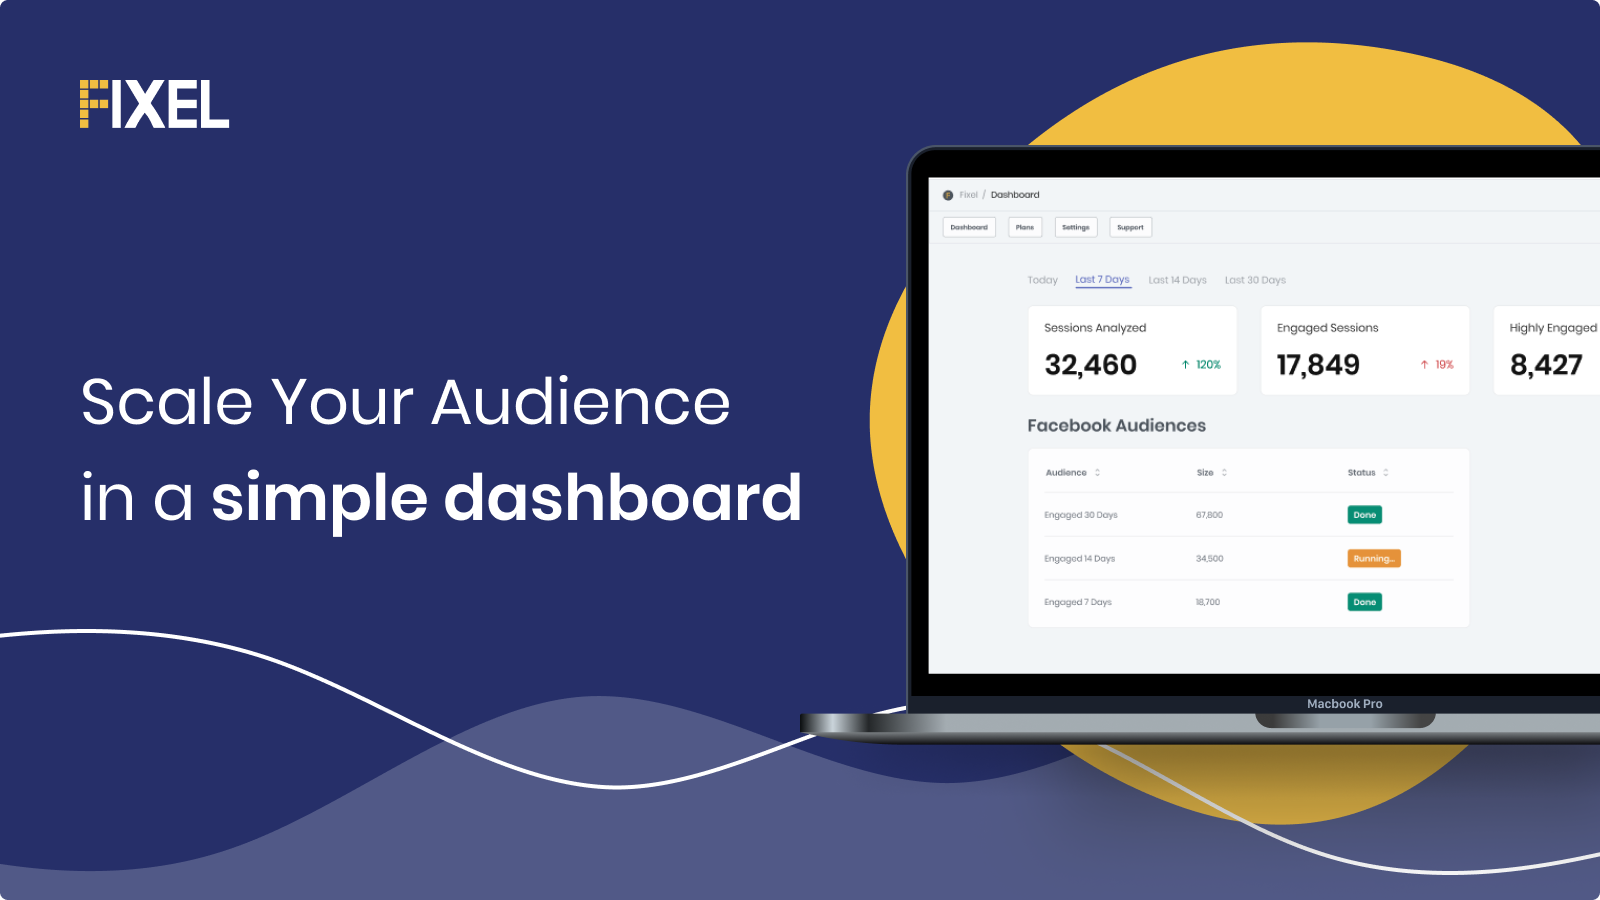 Manage all your audiences in one place